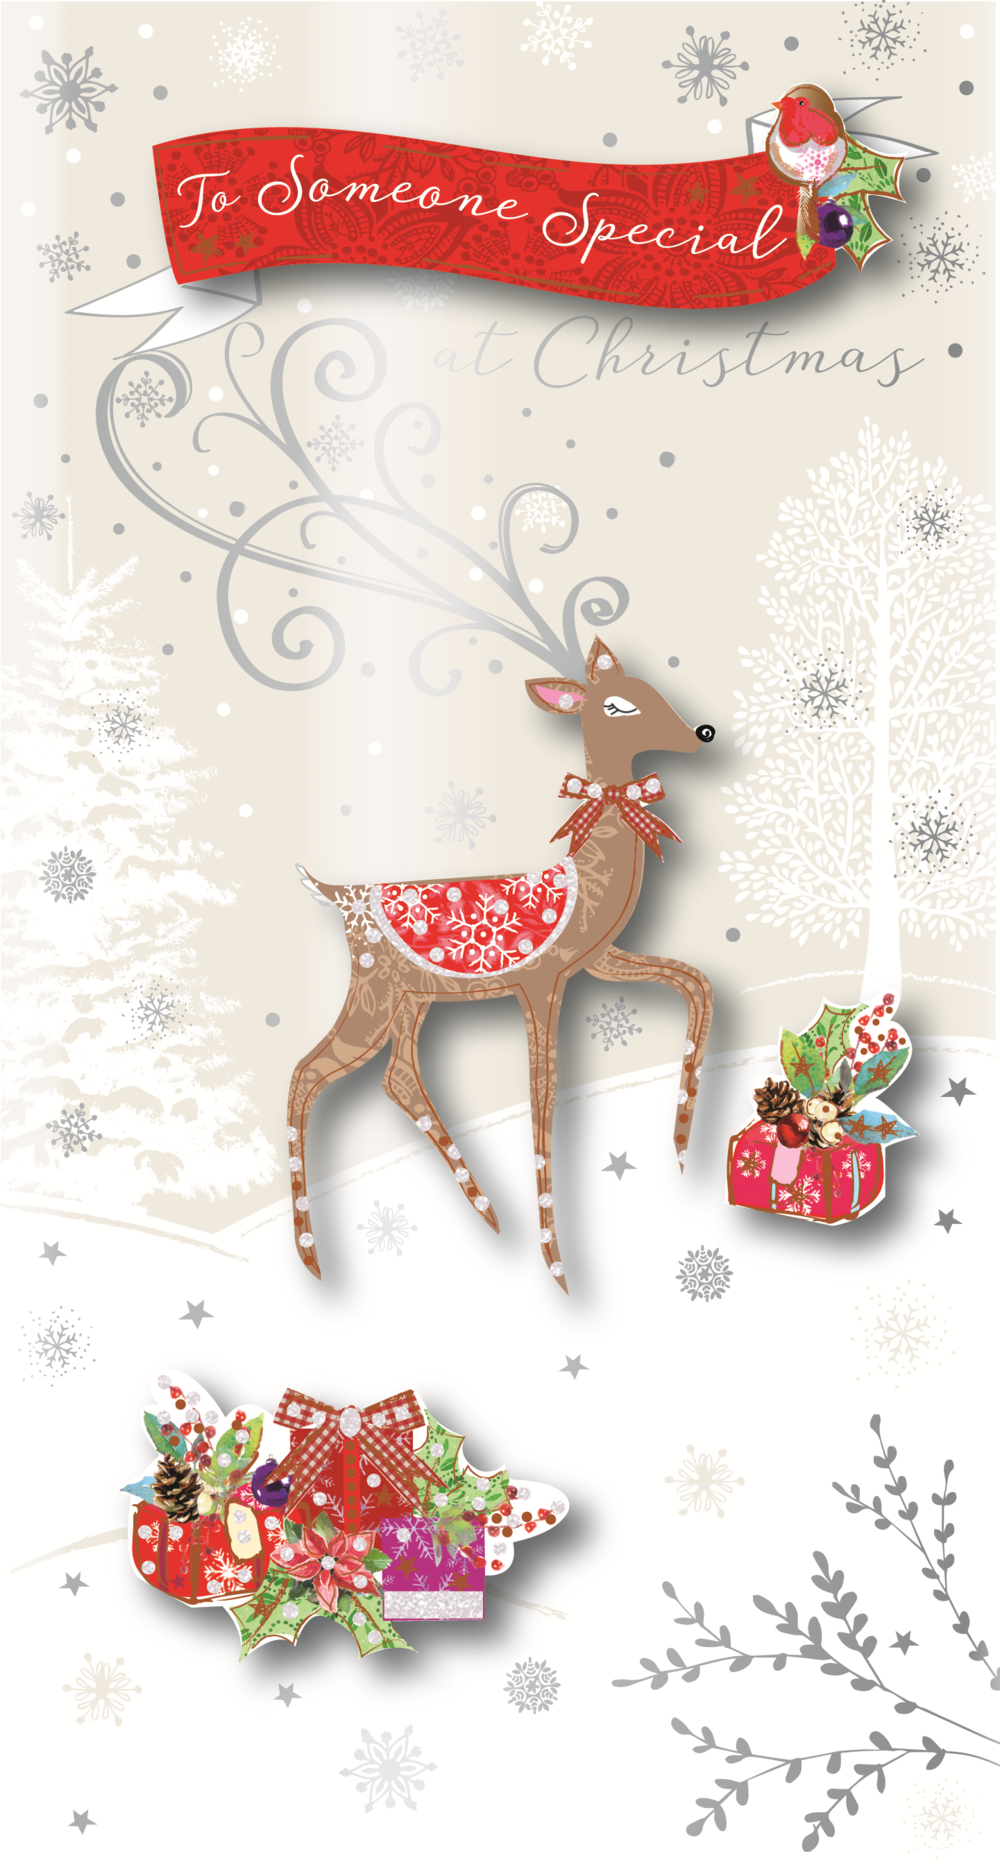 Someone Special Embellished Christmas Greeting Card